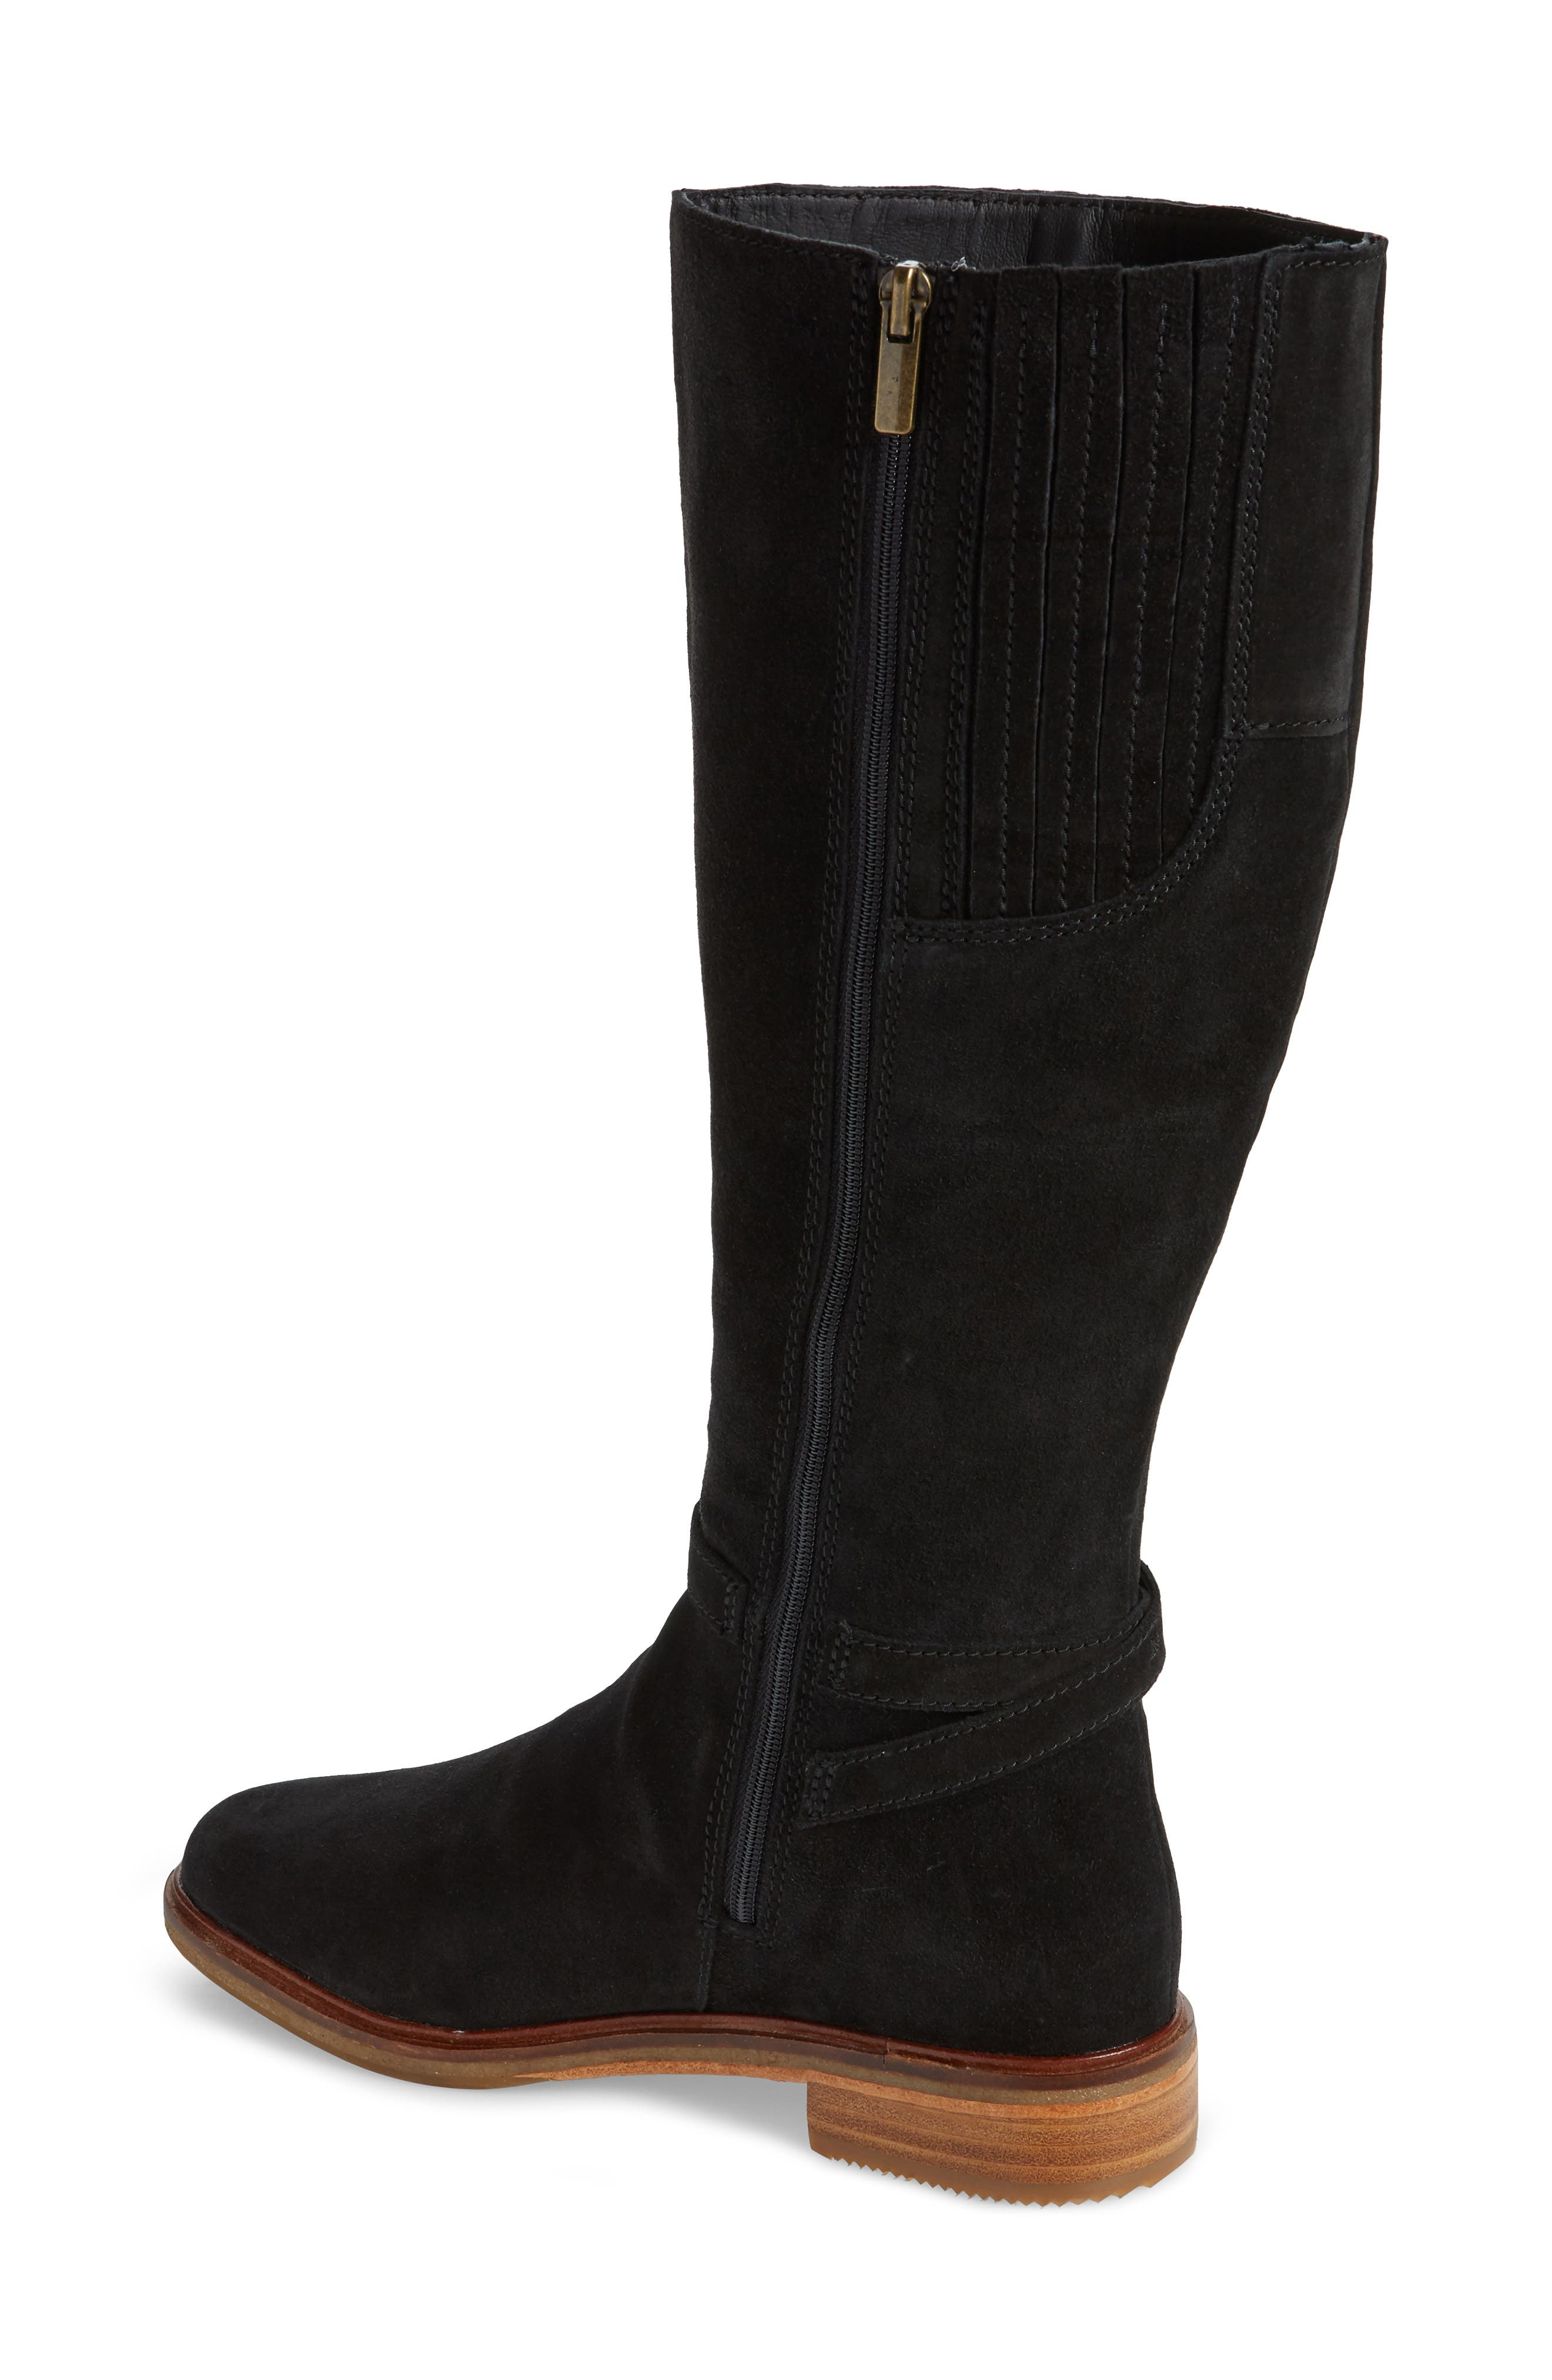 CLARKS<SUP>®</SUP>, Clarkdale Clad Boot, Alternate thumbnail 2, color, BLACK SUEDE